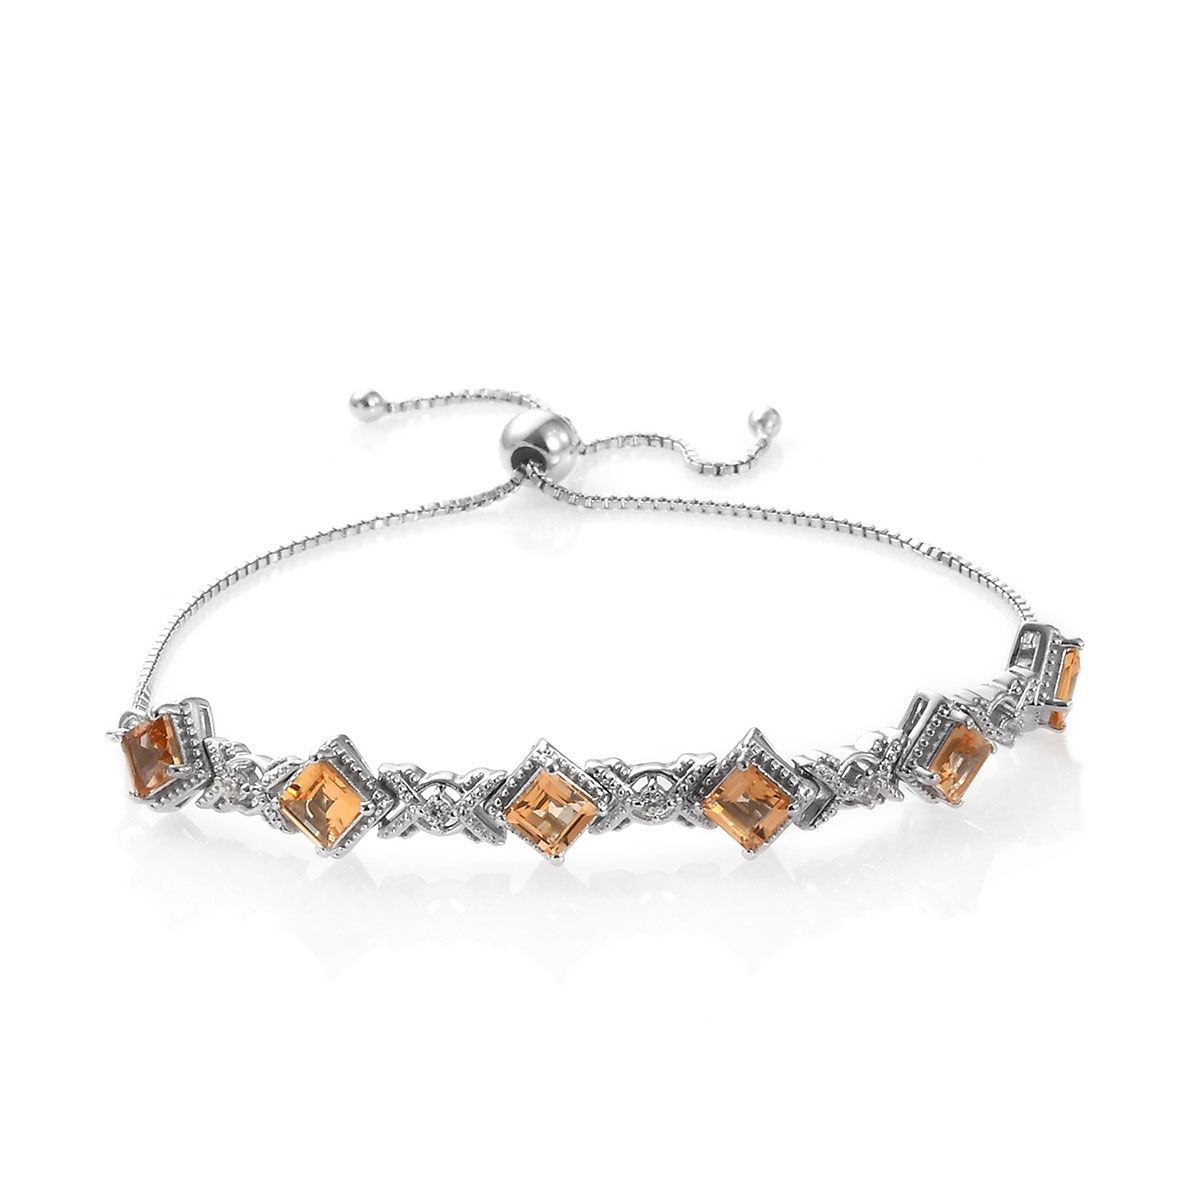 Golden Imperial Topaz, Zircon Bolo Bracelet in Platinum Over Sterling Silver 3.53 ctw